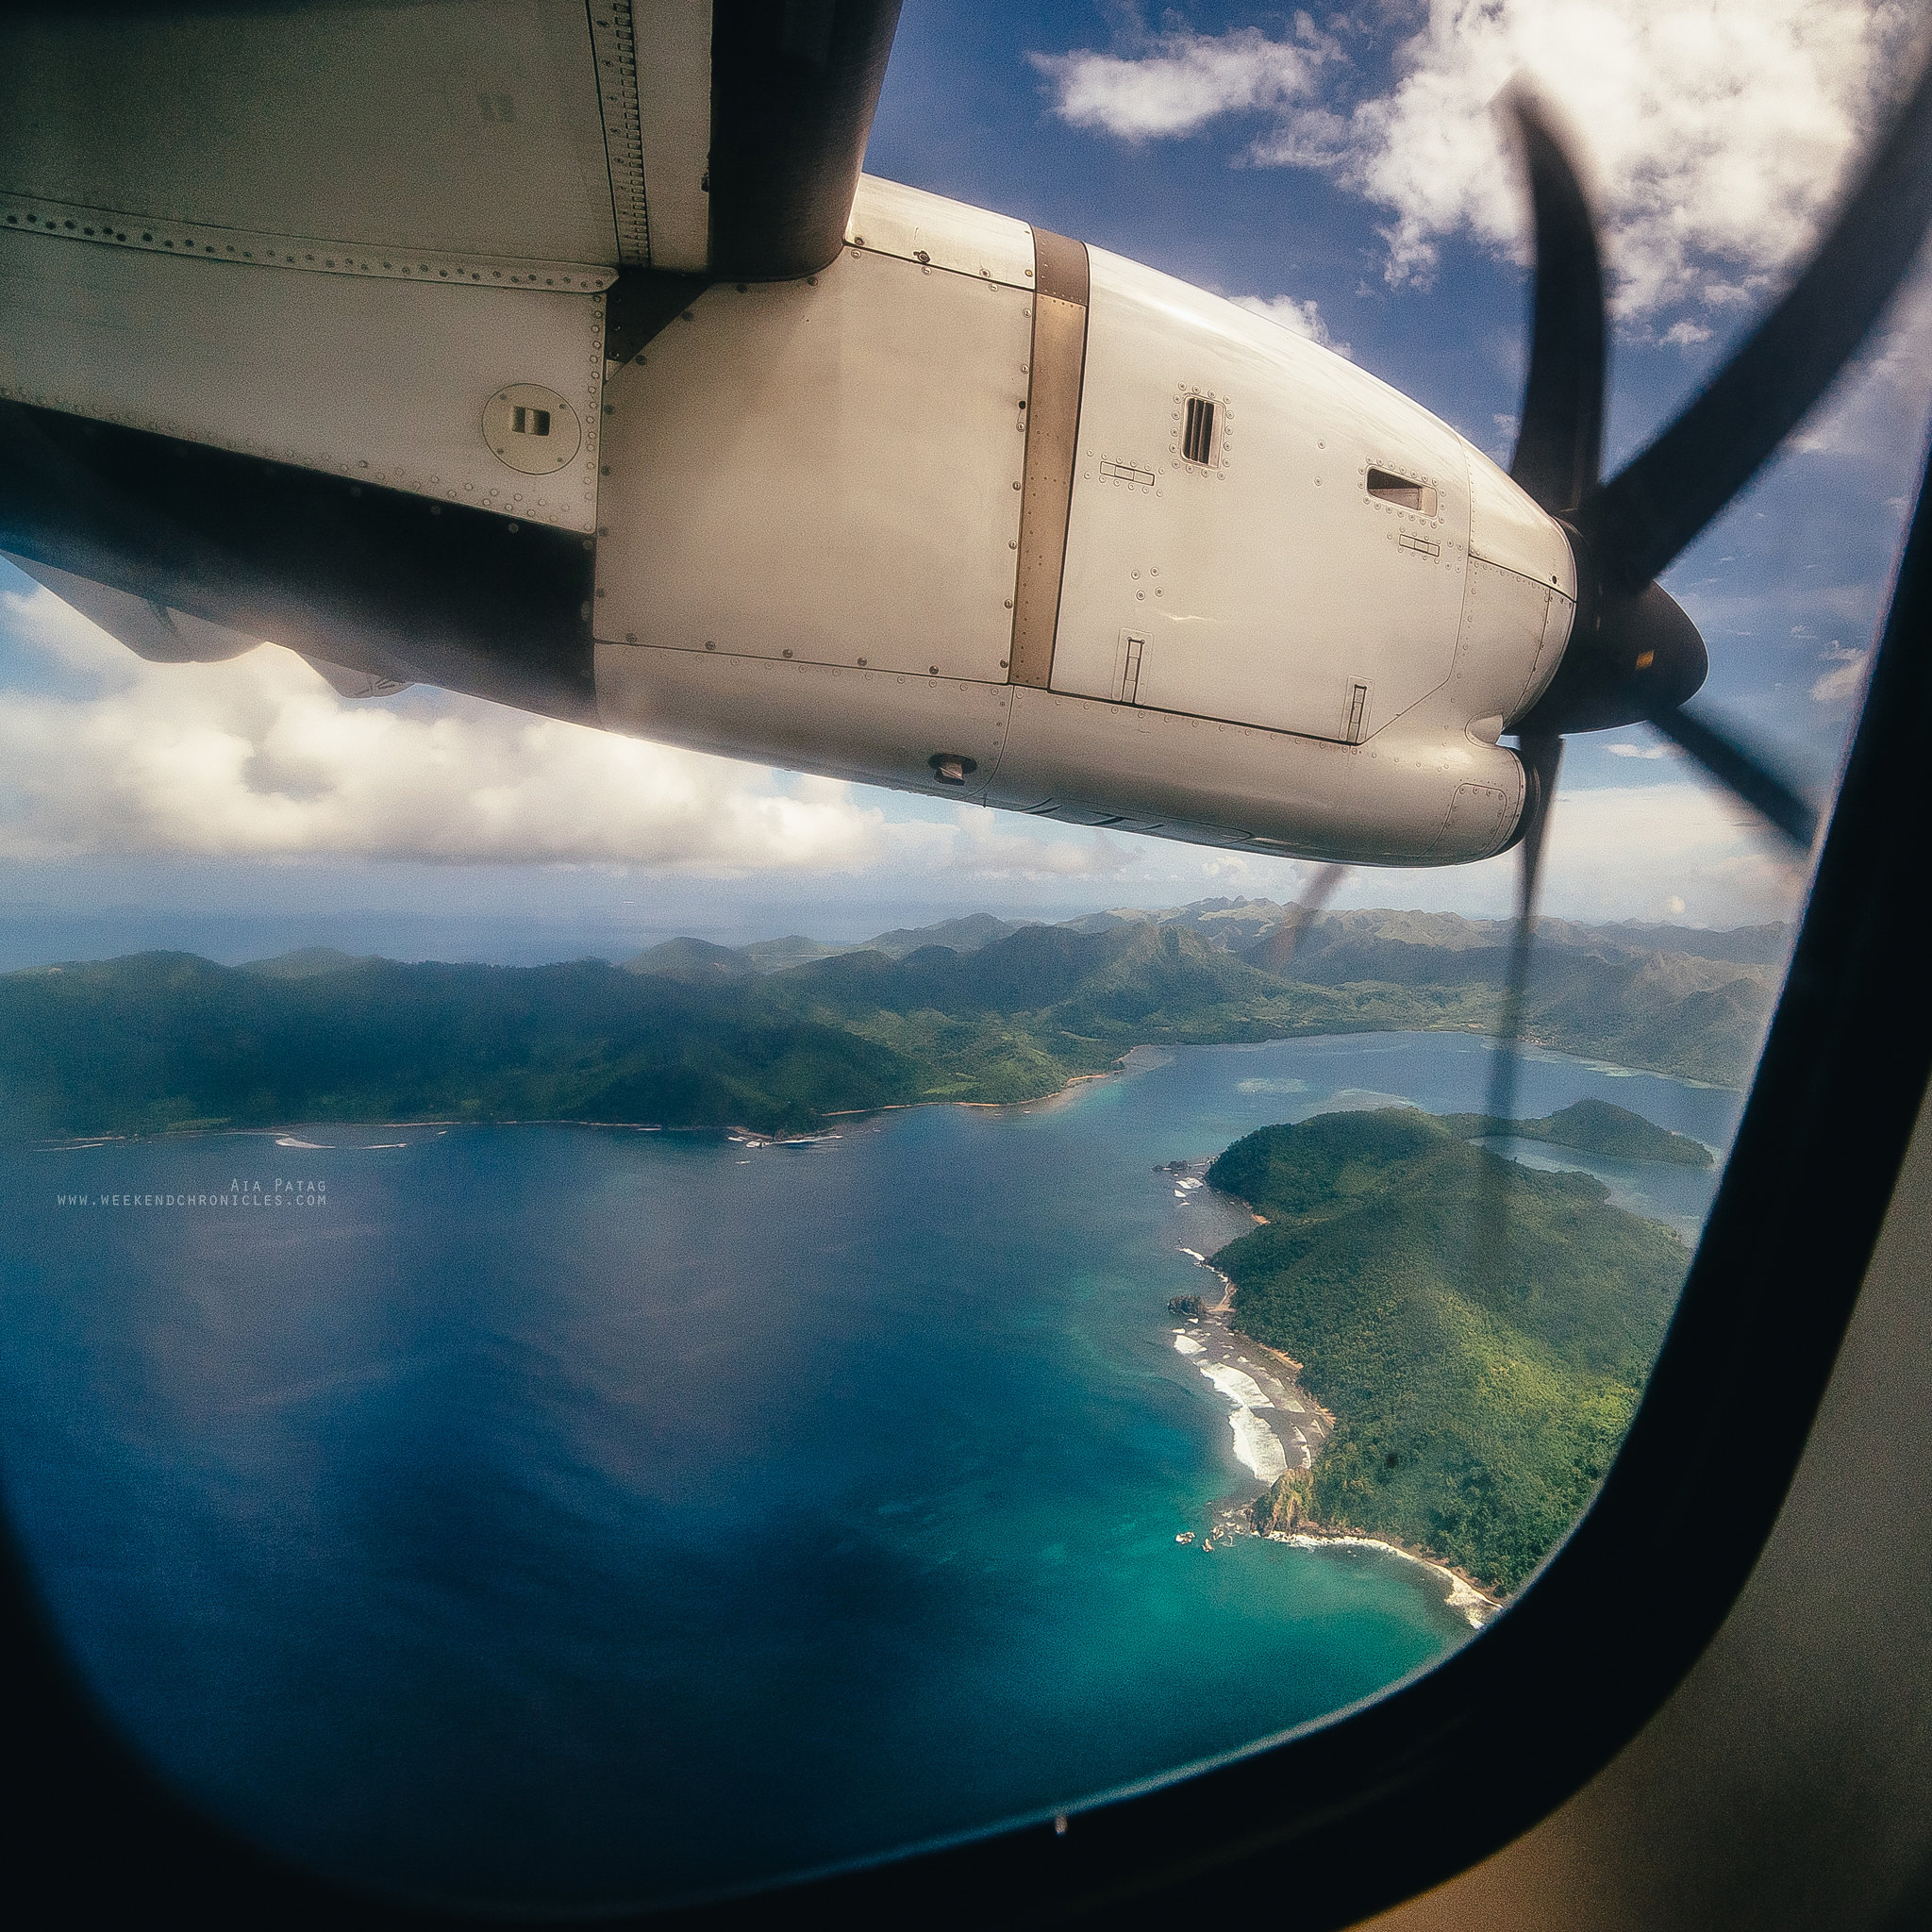 Through Cebu Pacific's dirty window